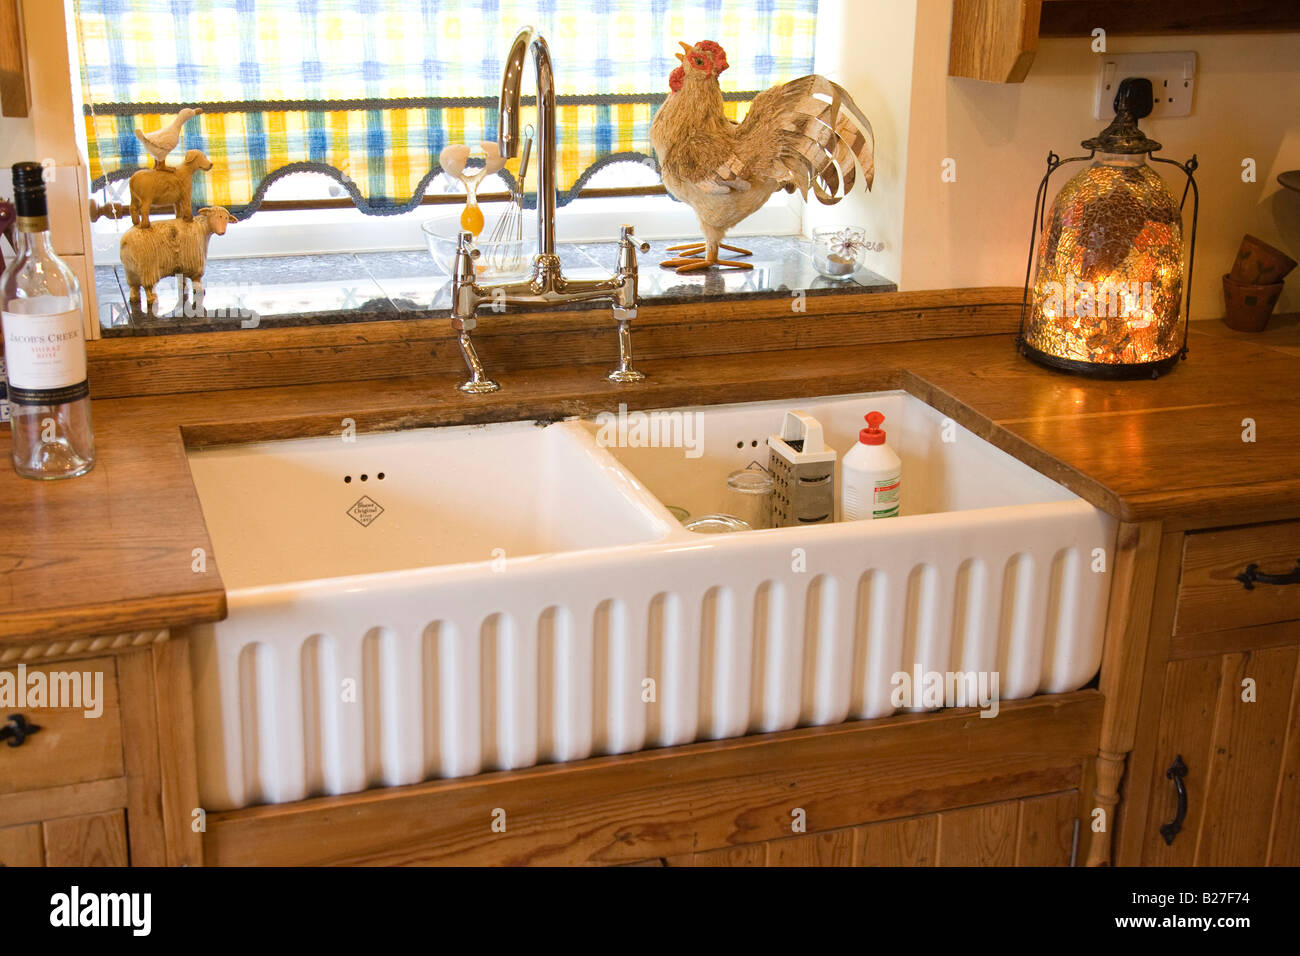 Double Kitchen Sink Stockfotos & Double Kitchen Sink Bilder - Seite ...